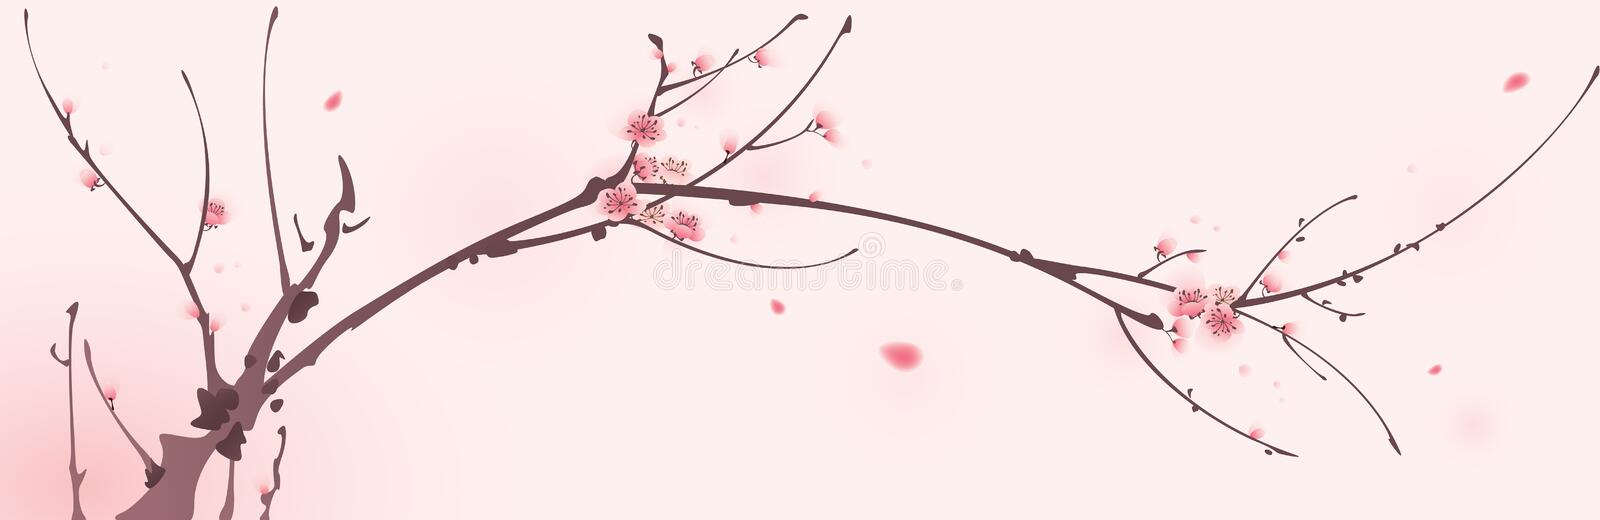 Oriental style painting, cherry blossom in spring stock illustration